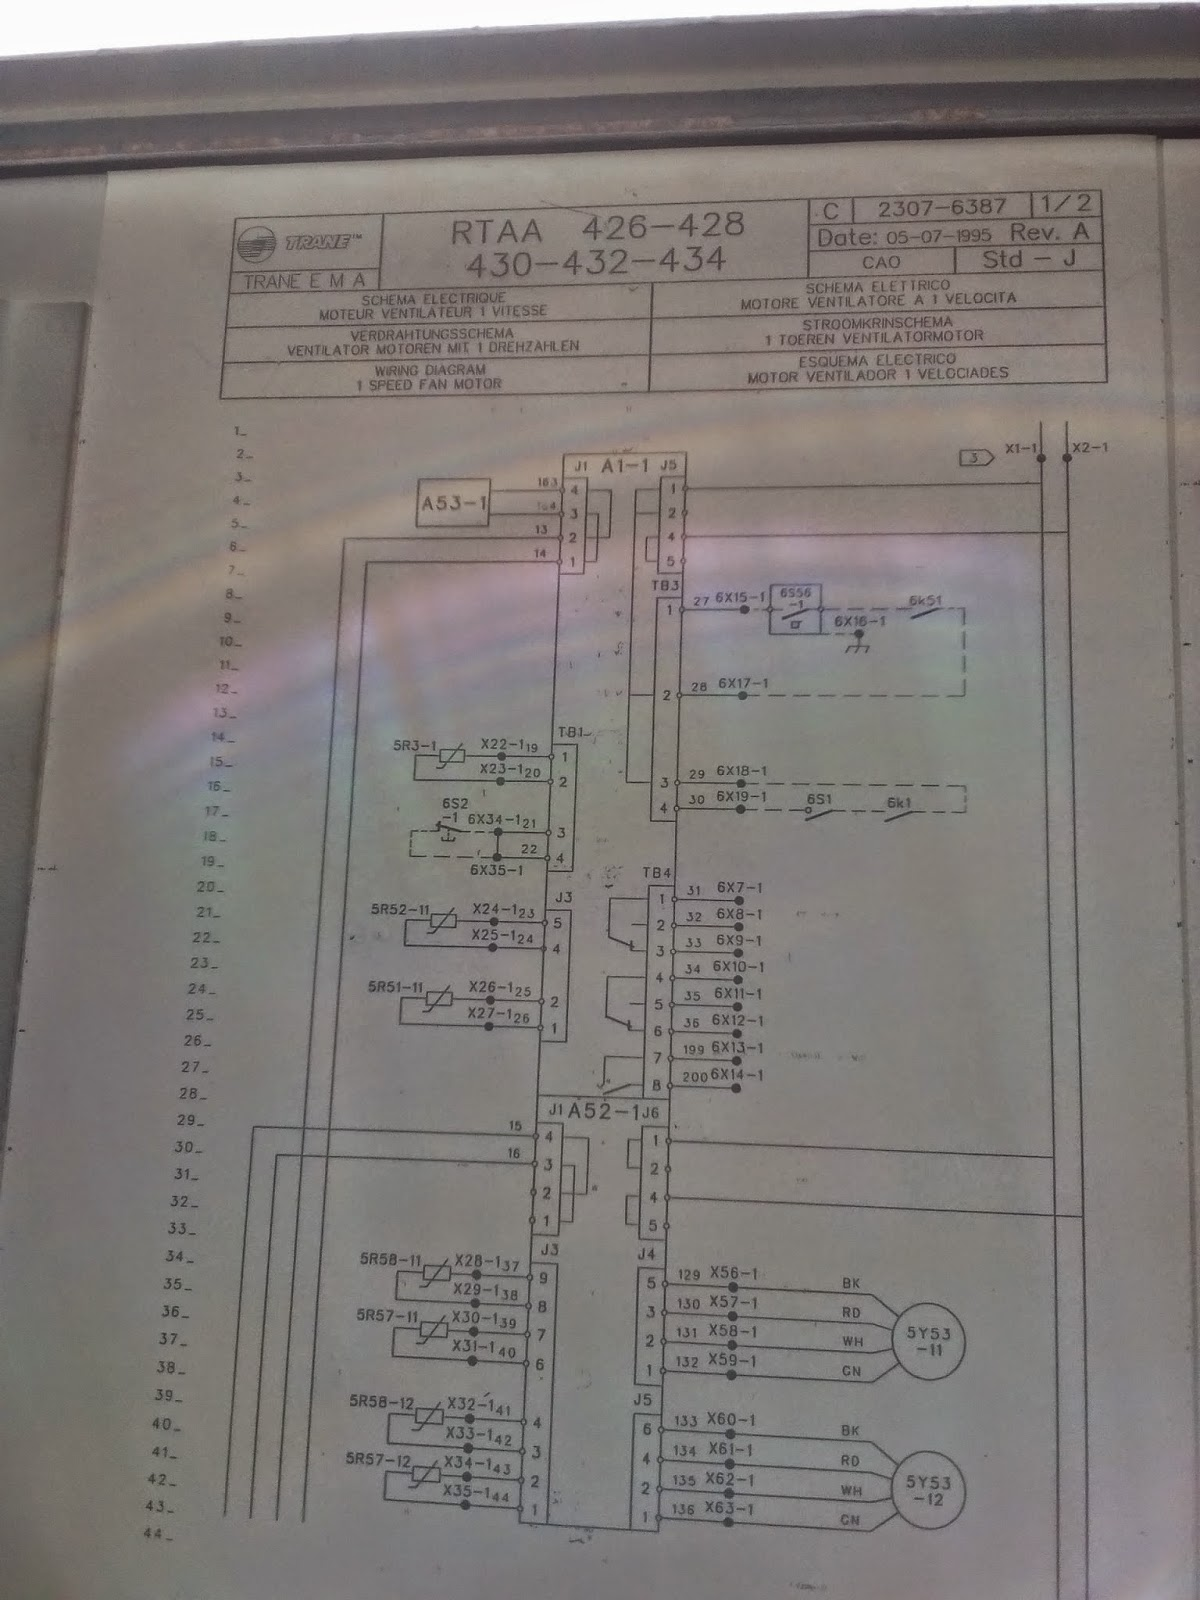 IMG_20150401_130721 hvac, chillers, heatpump trane chiller air cooled control wiring trane chiller wiring diagram at soozxer.org